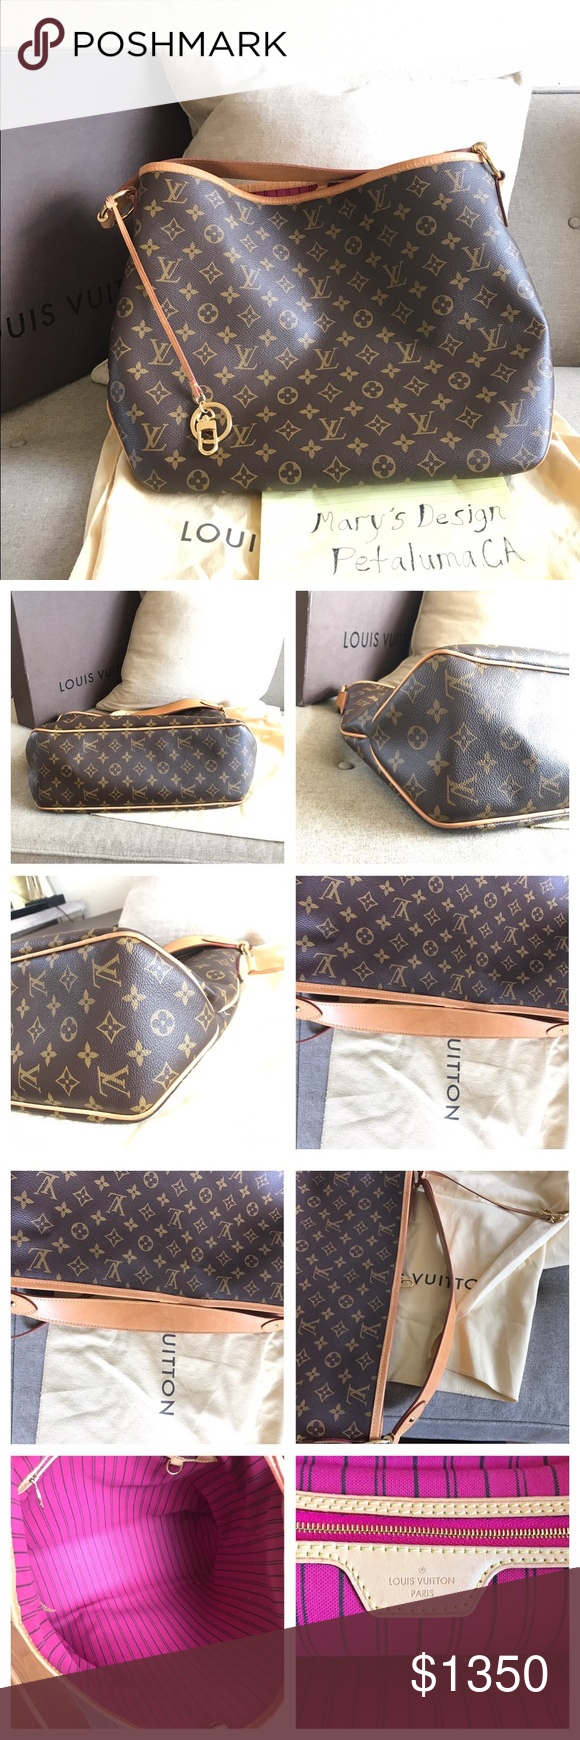 8755bdc9bd5d Authentic Louis Vuitton Delightful Mm Mono Piovine Authentic Louis Vuitton  Delightful Mm Monogram in very good